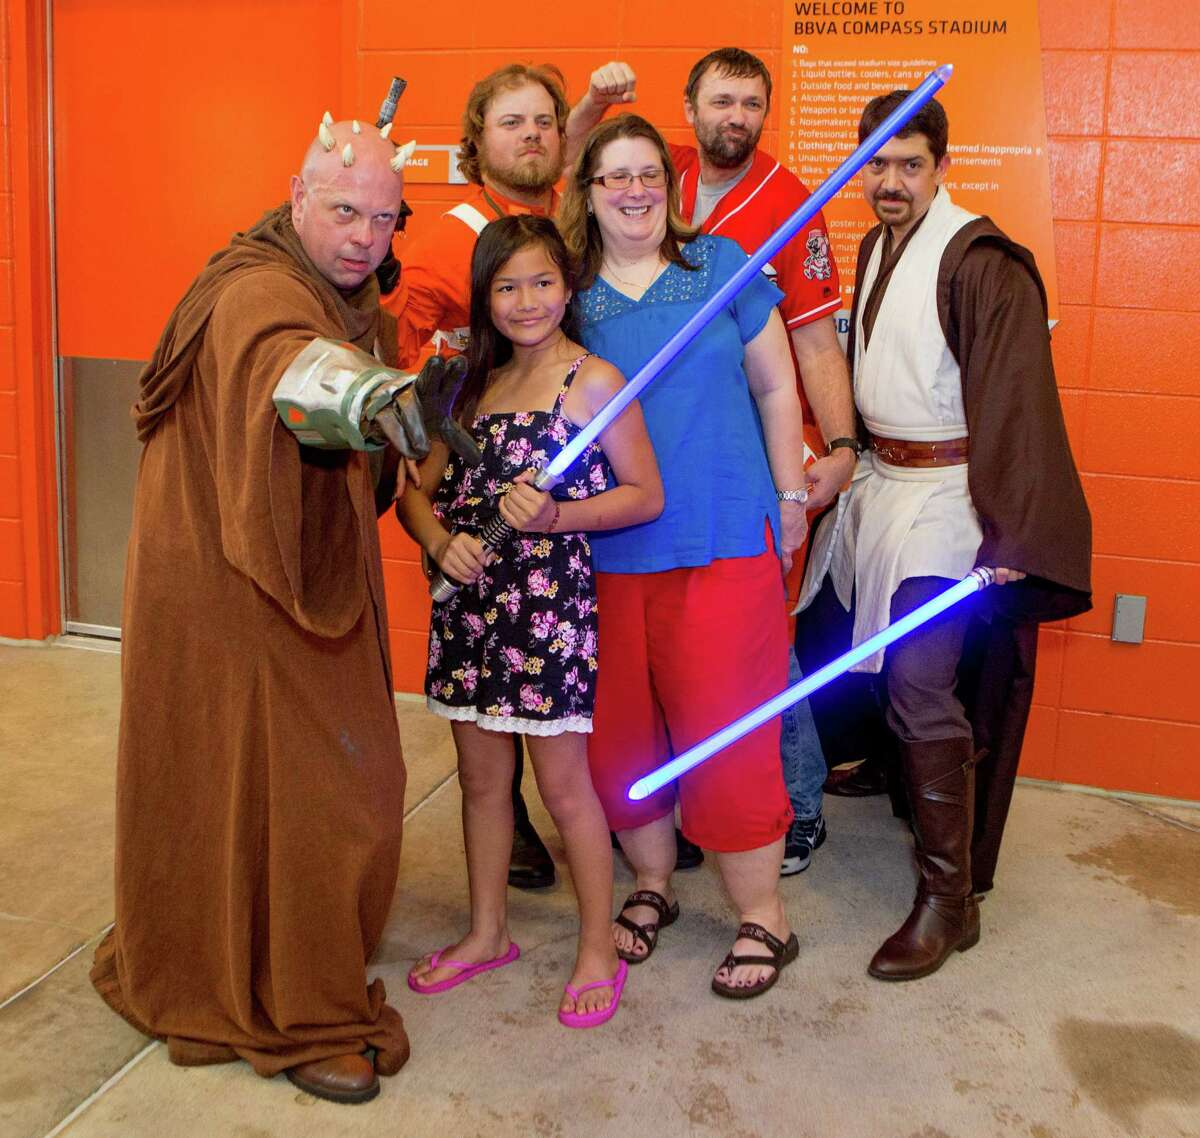 Soccer fans posing with Star Wars characters before the first half of action between the Houston Dynamo and the D.C. United during a soccer game at BBVA Compass, Saturday, June 18, 2016, in Houston. ( Juan DeLeon / for the Houston Chronicle )